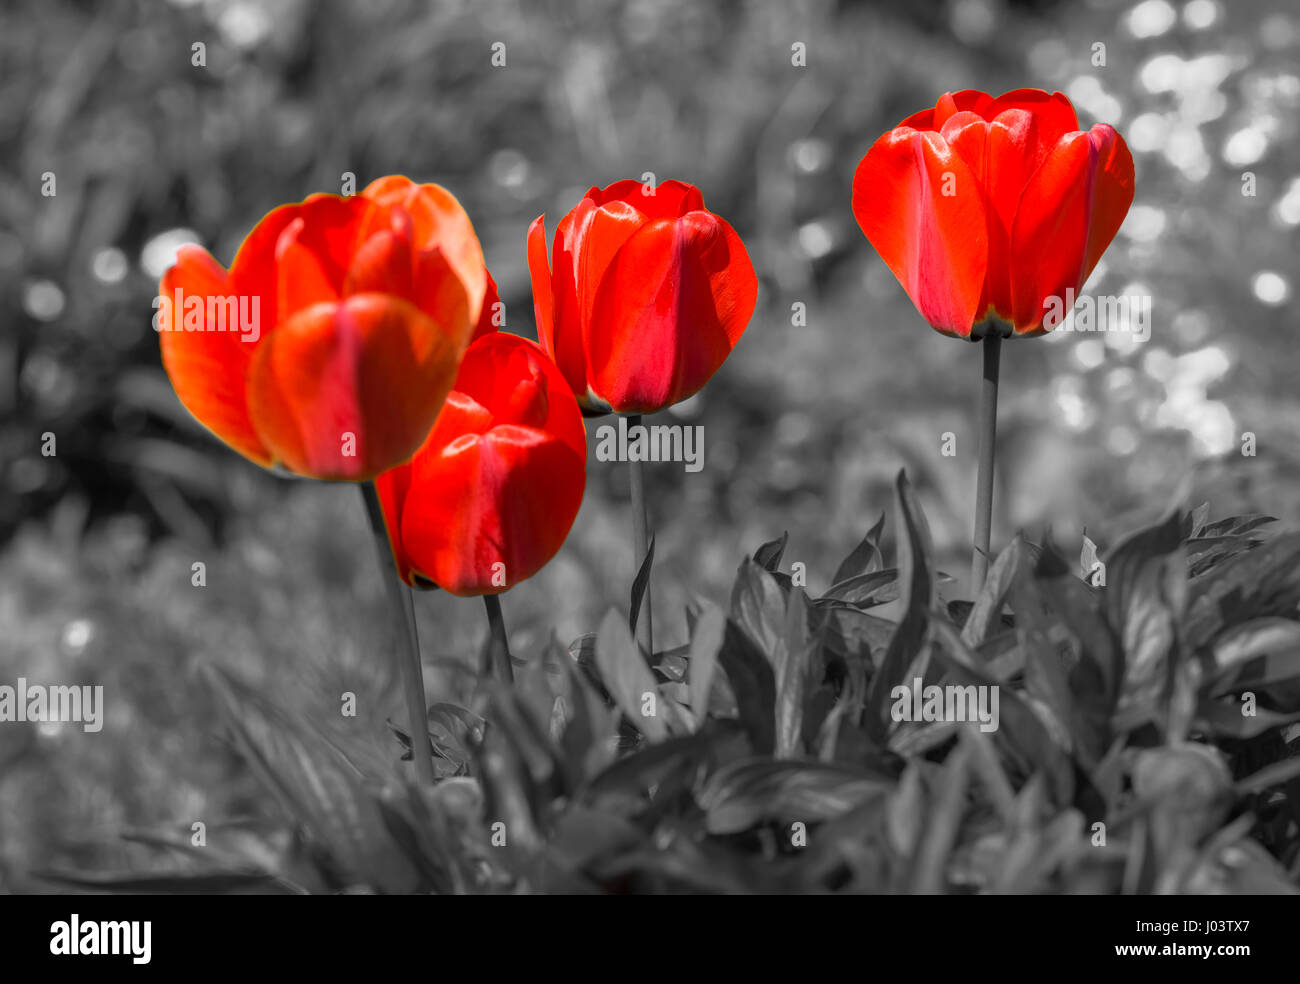 red-tulips-standing-out-against-a-monoch